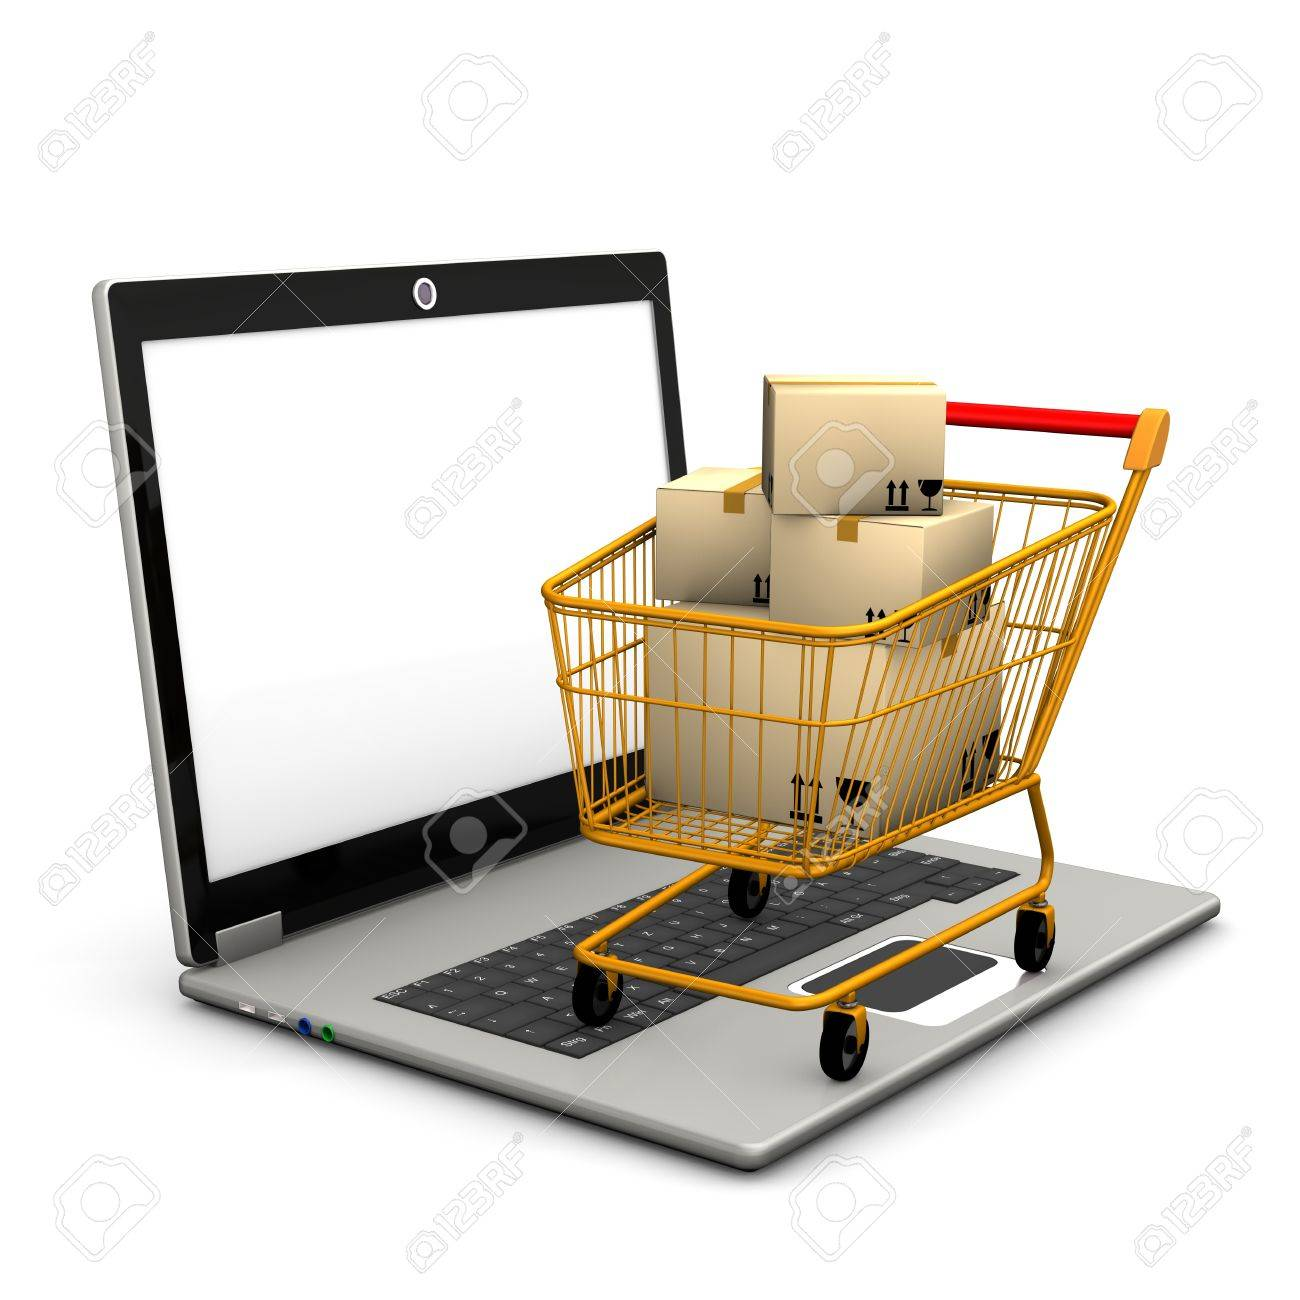 Laptop with shopping cart and shipping cartons Stock Photo - 17259464